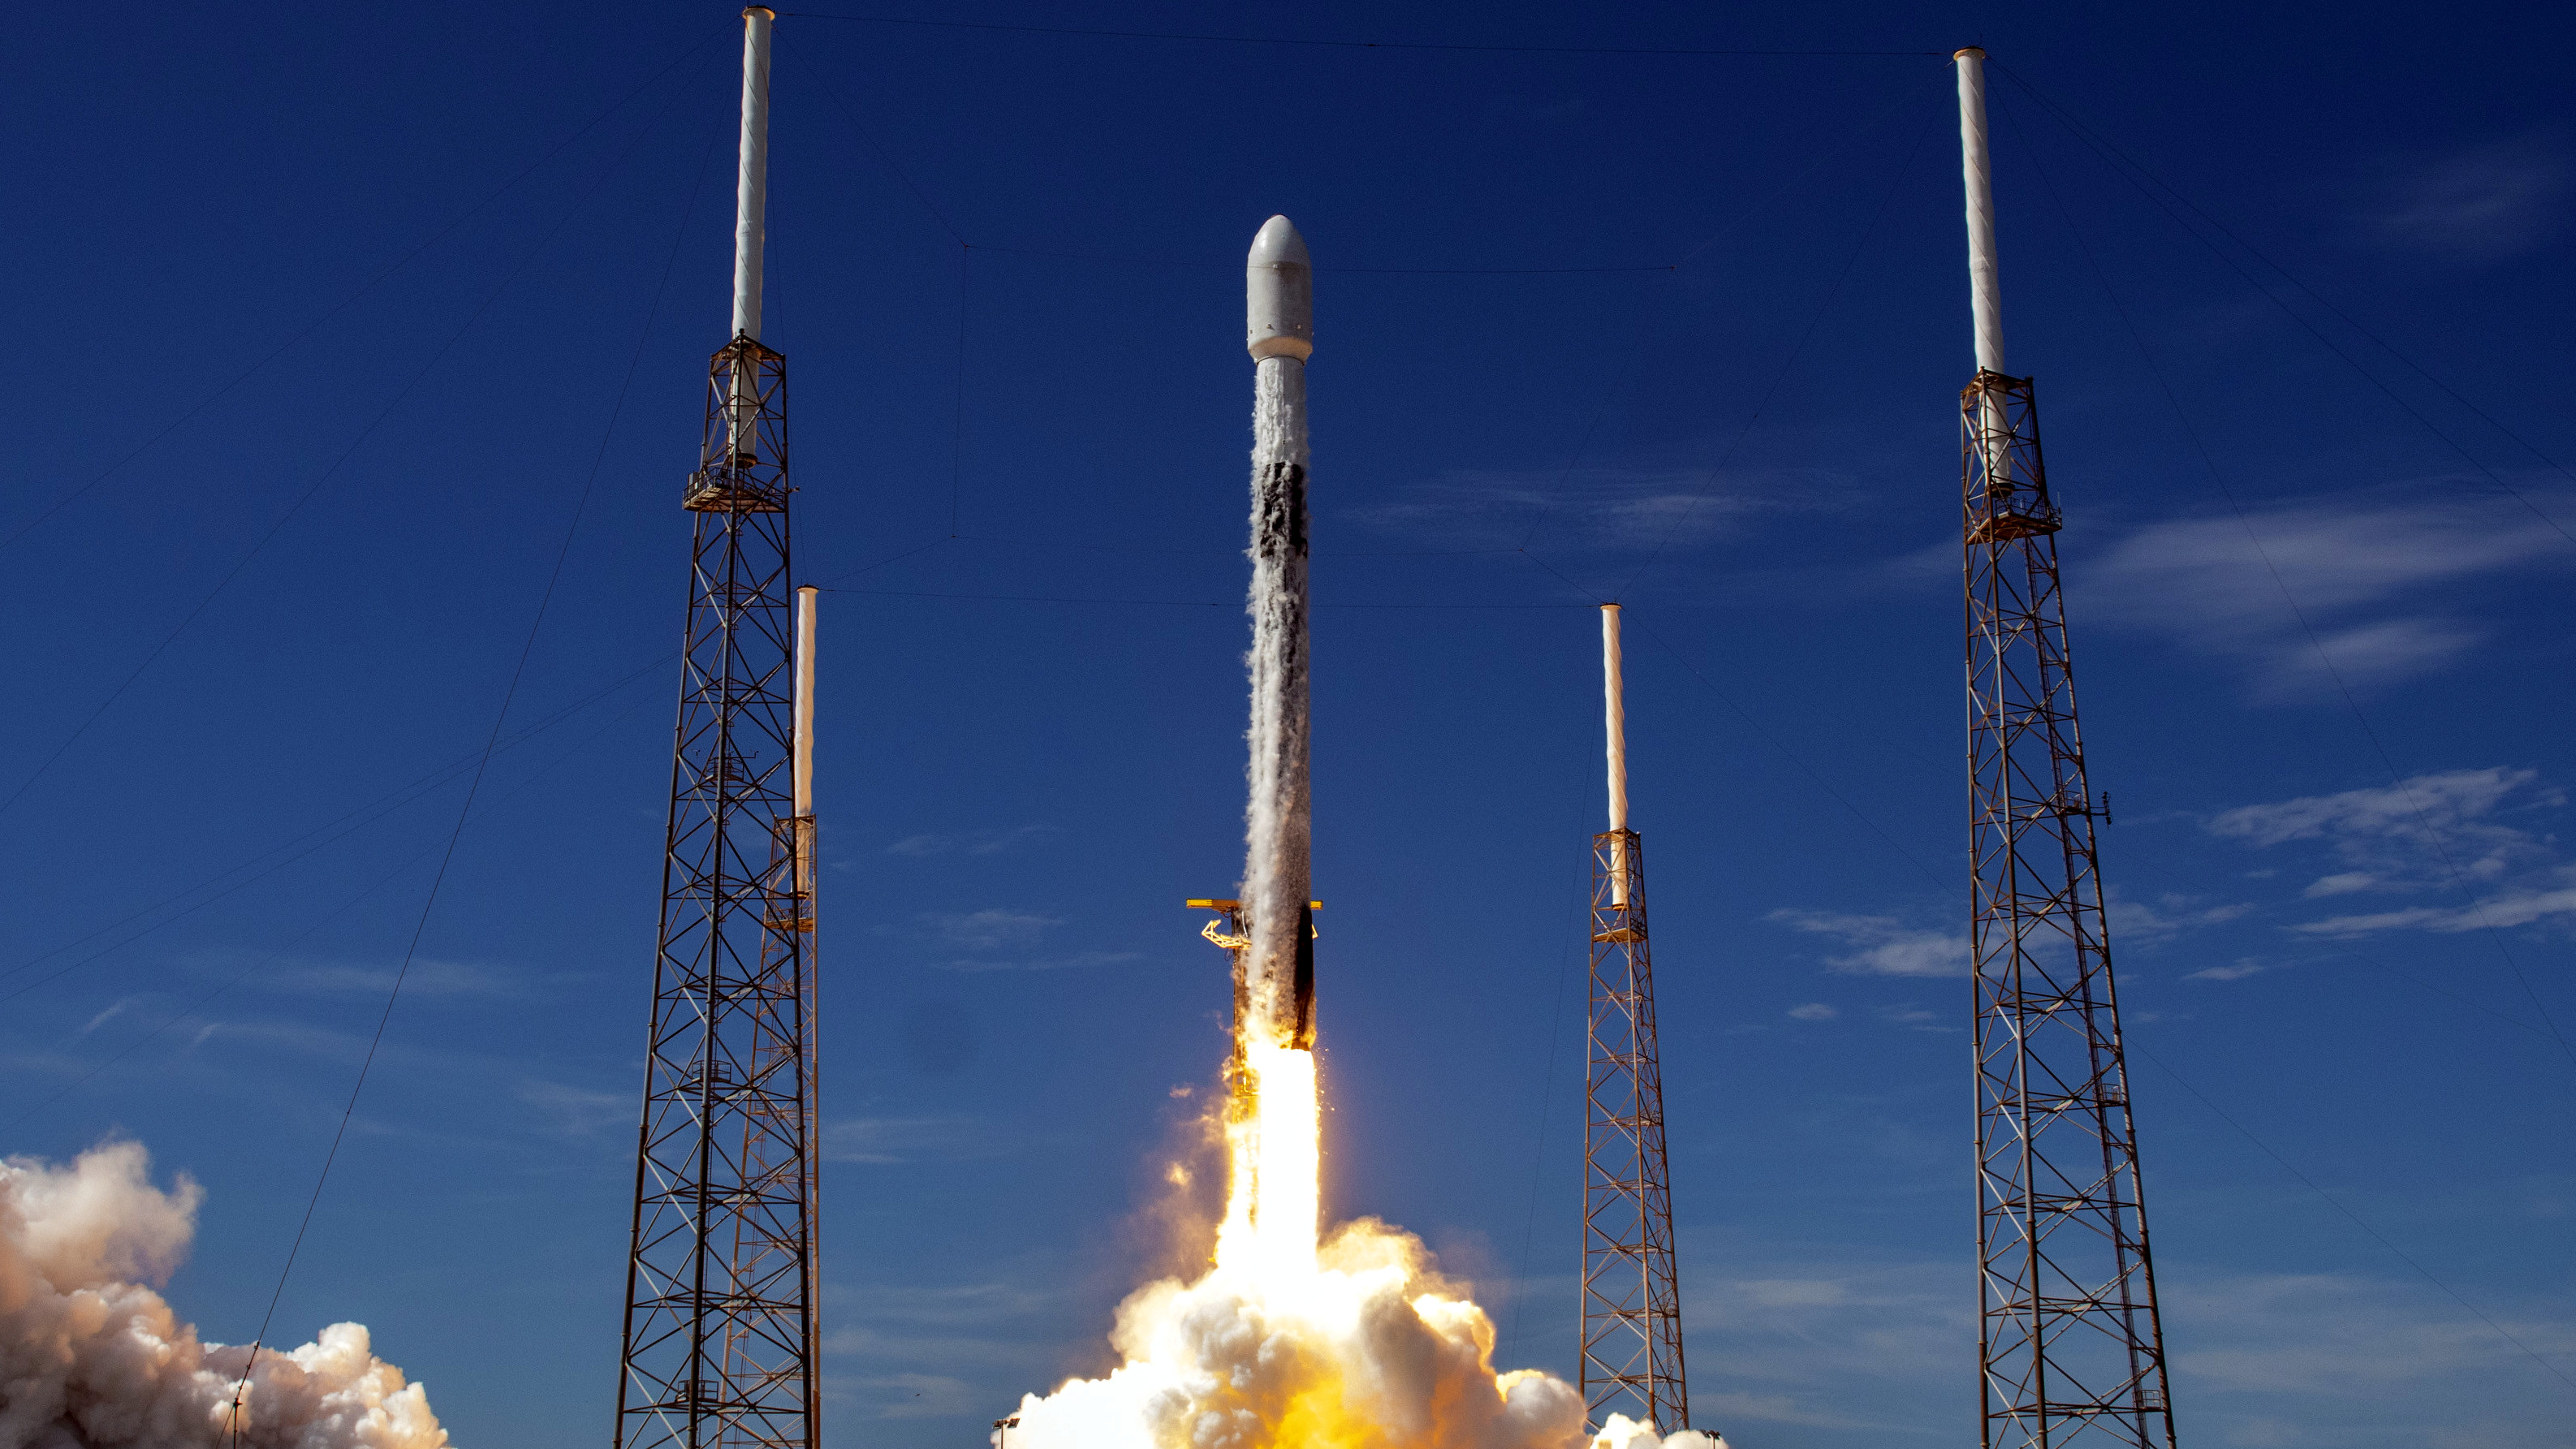 A SpaceX Falcon 9 rocket launches Starlink satellites in August 2020.